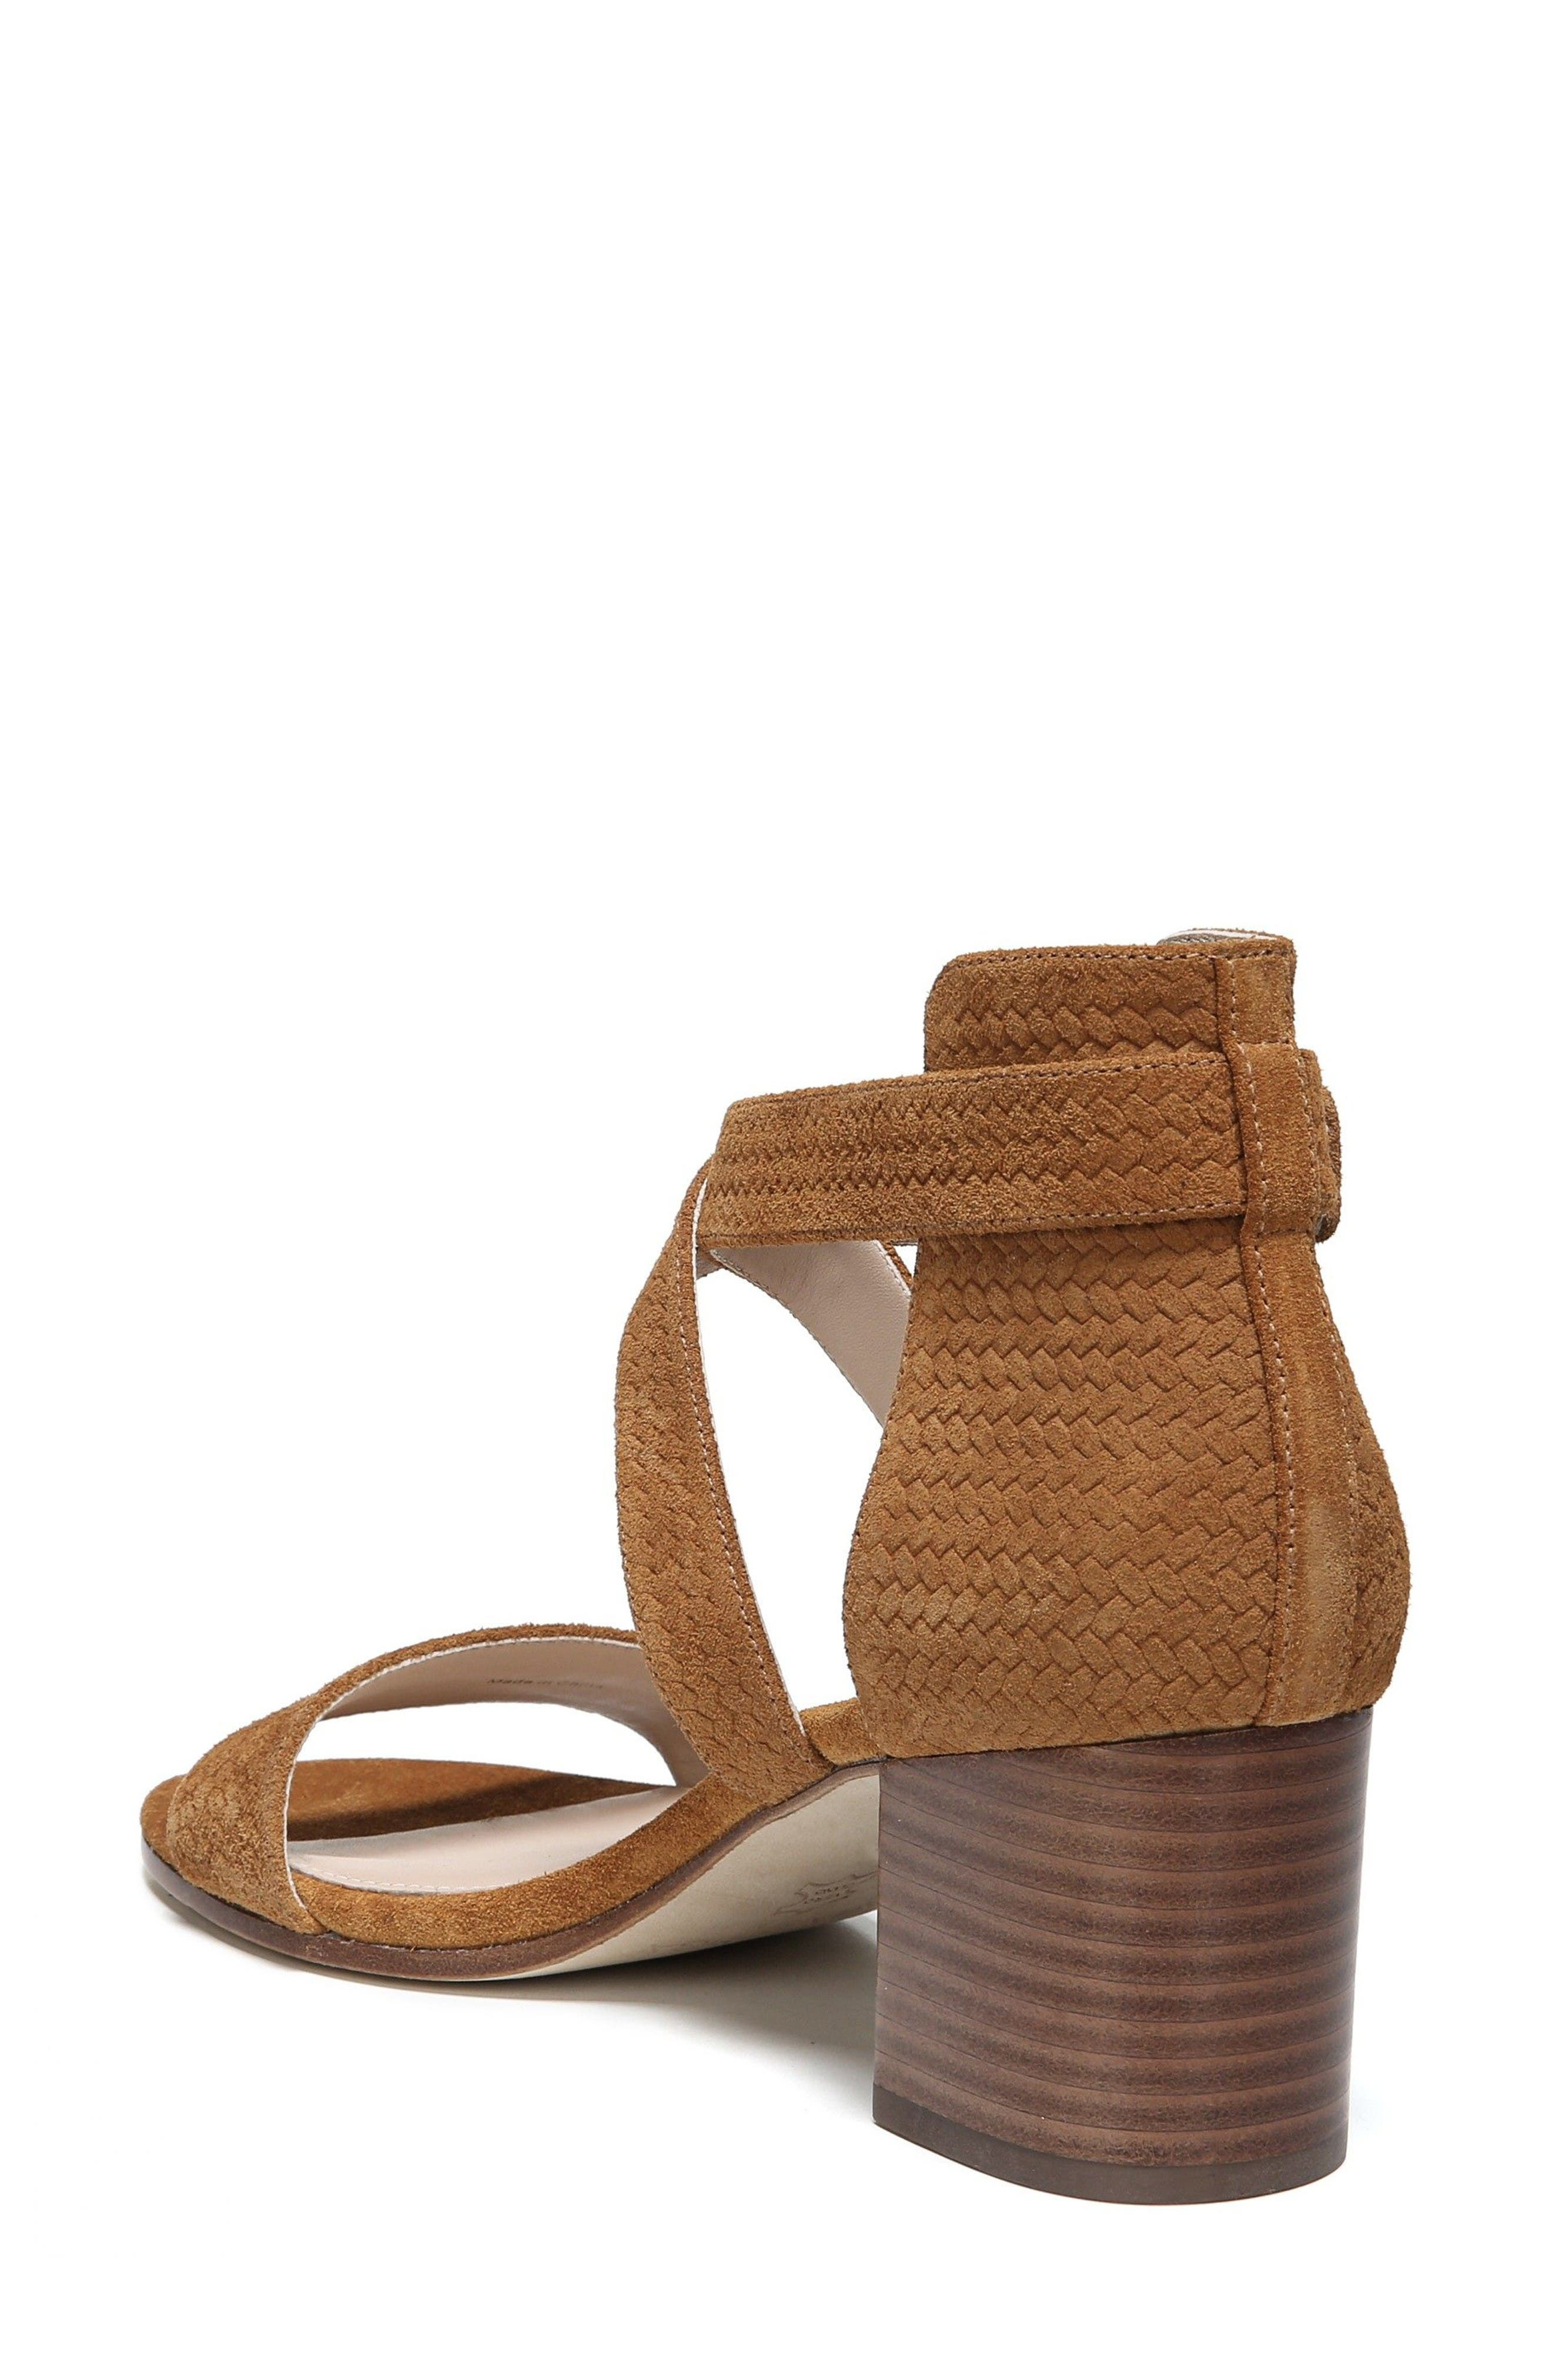 'Jobina' Crisscross Strap Block Heel Sandal,                             Alternate thumbnail 2, color,                             Tawny Suede